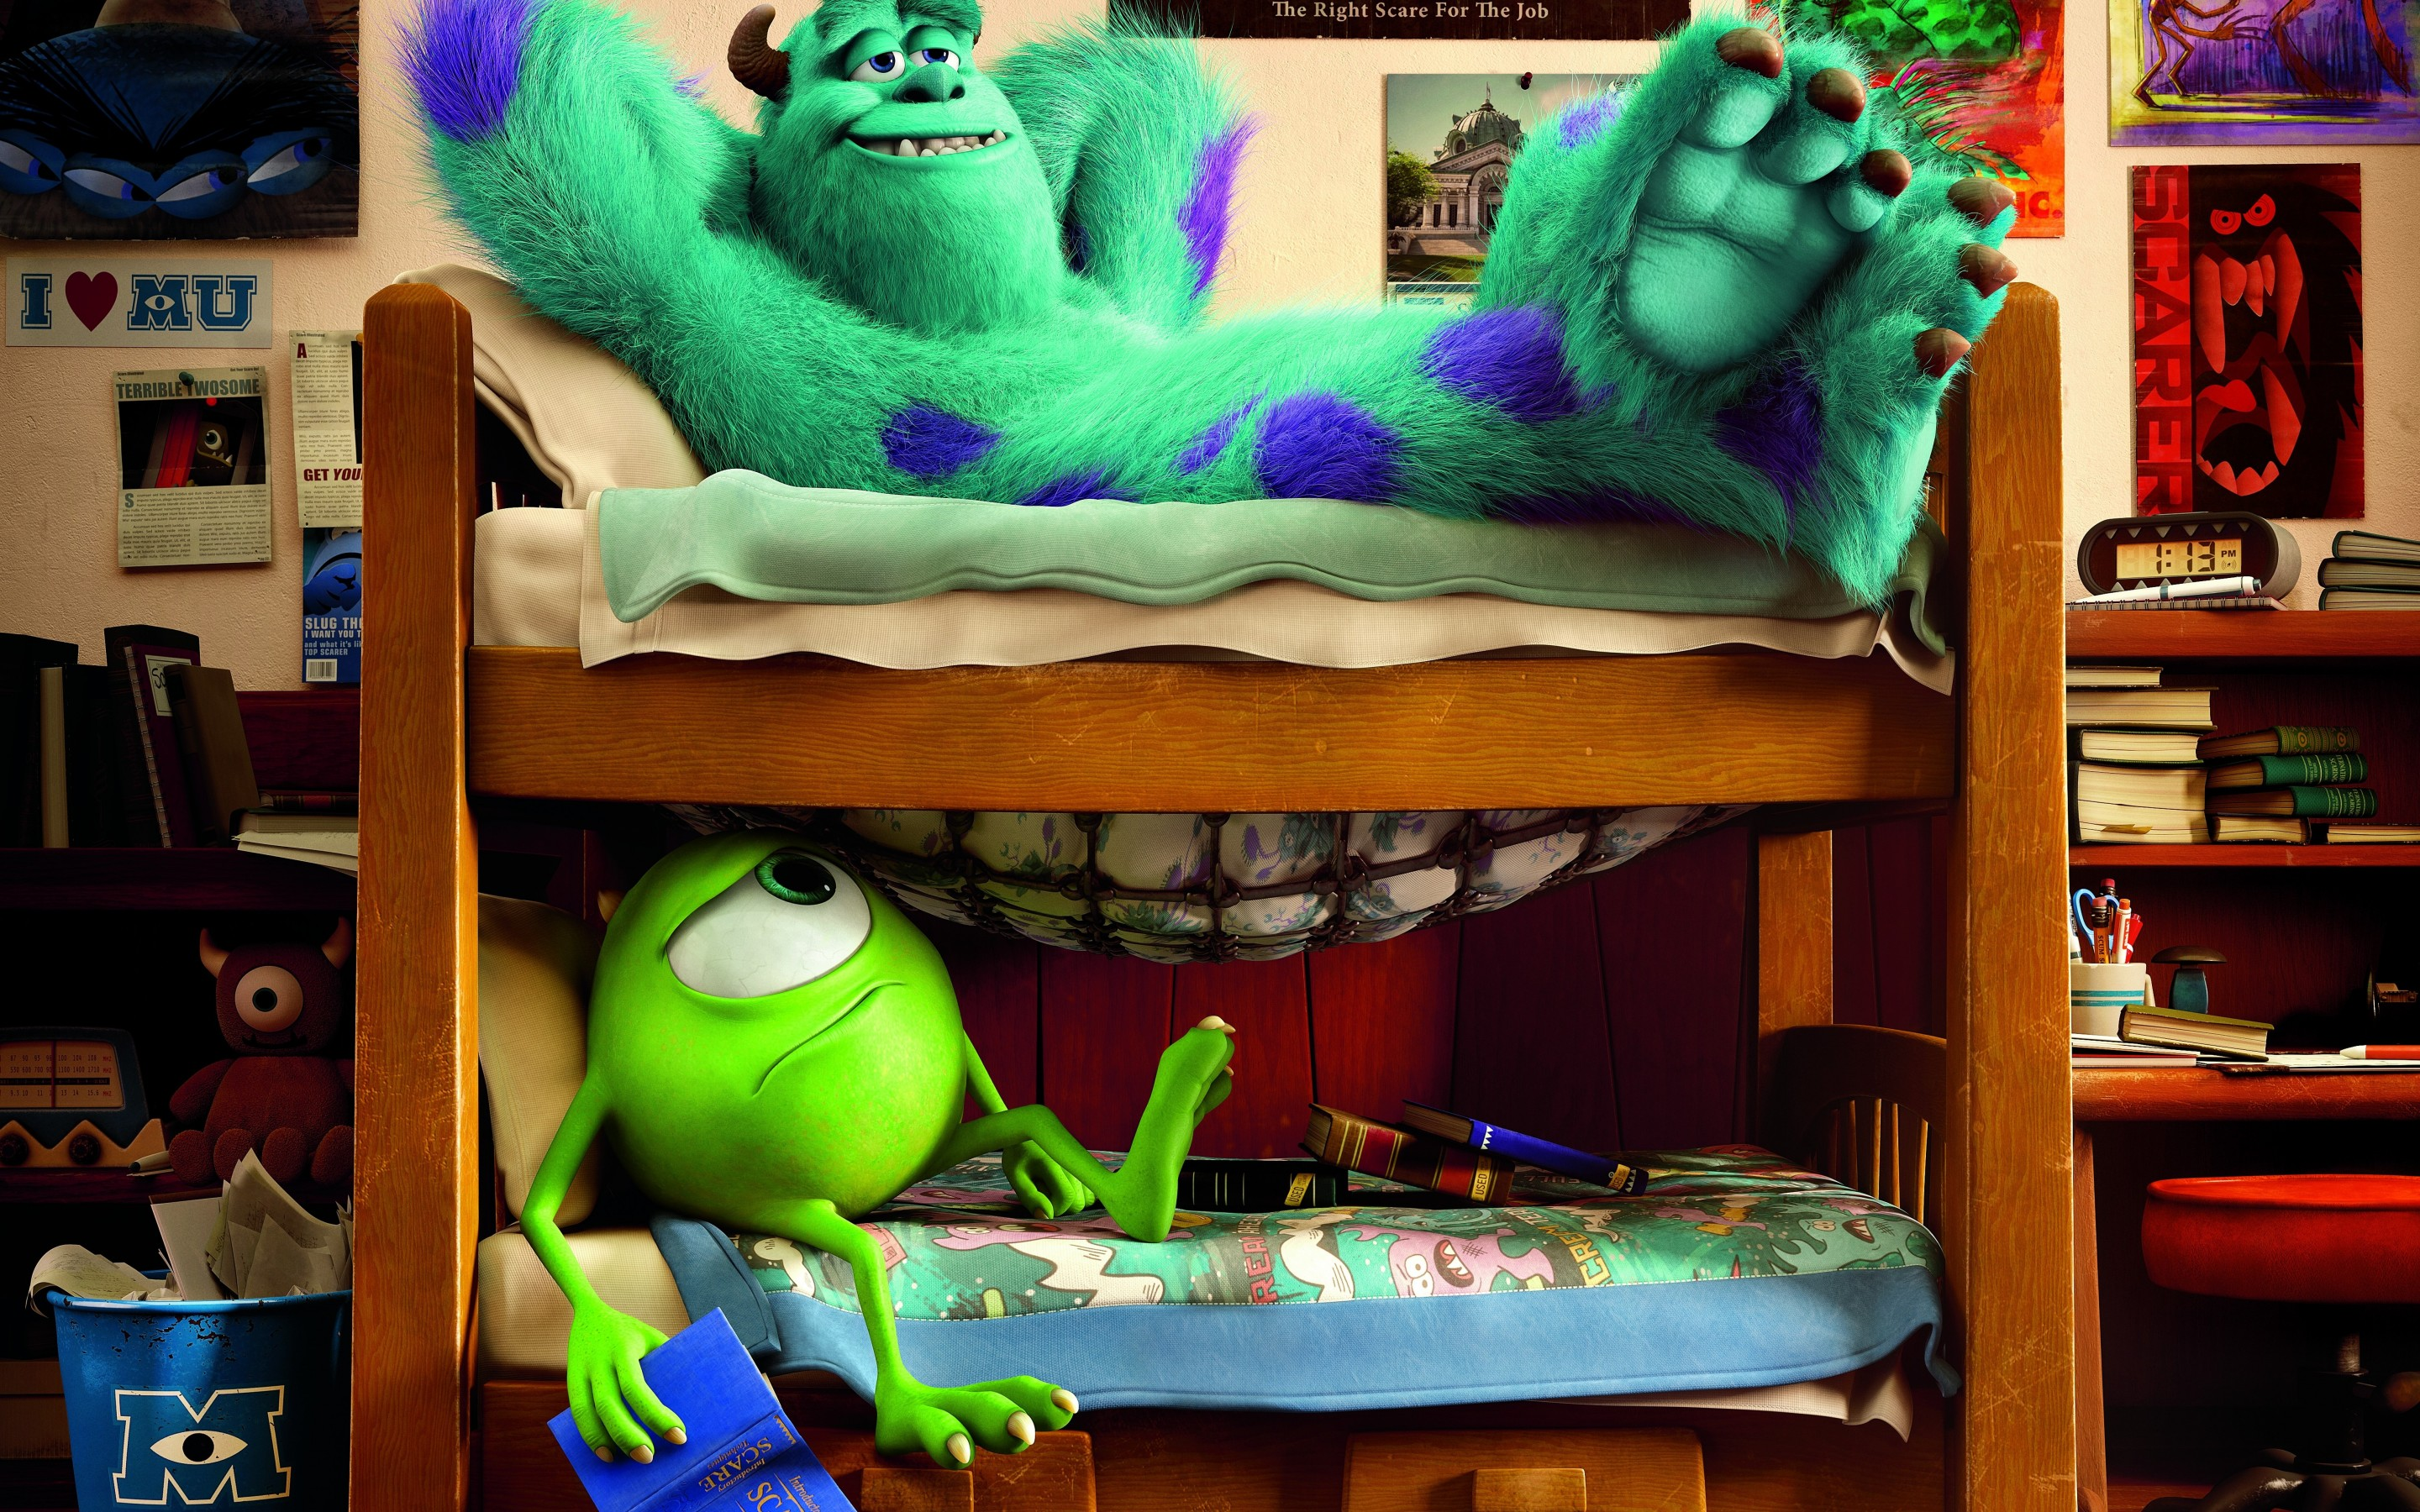 Cute Boo Desktop Wallpaper Monsters University Full Hd Wallpaper And Background Image